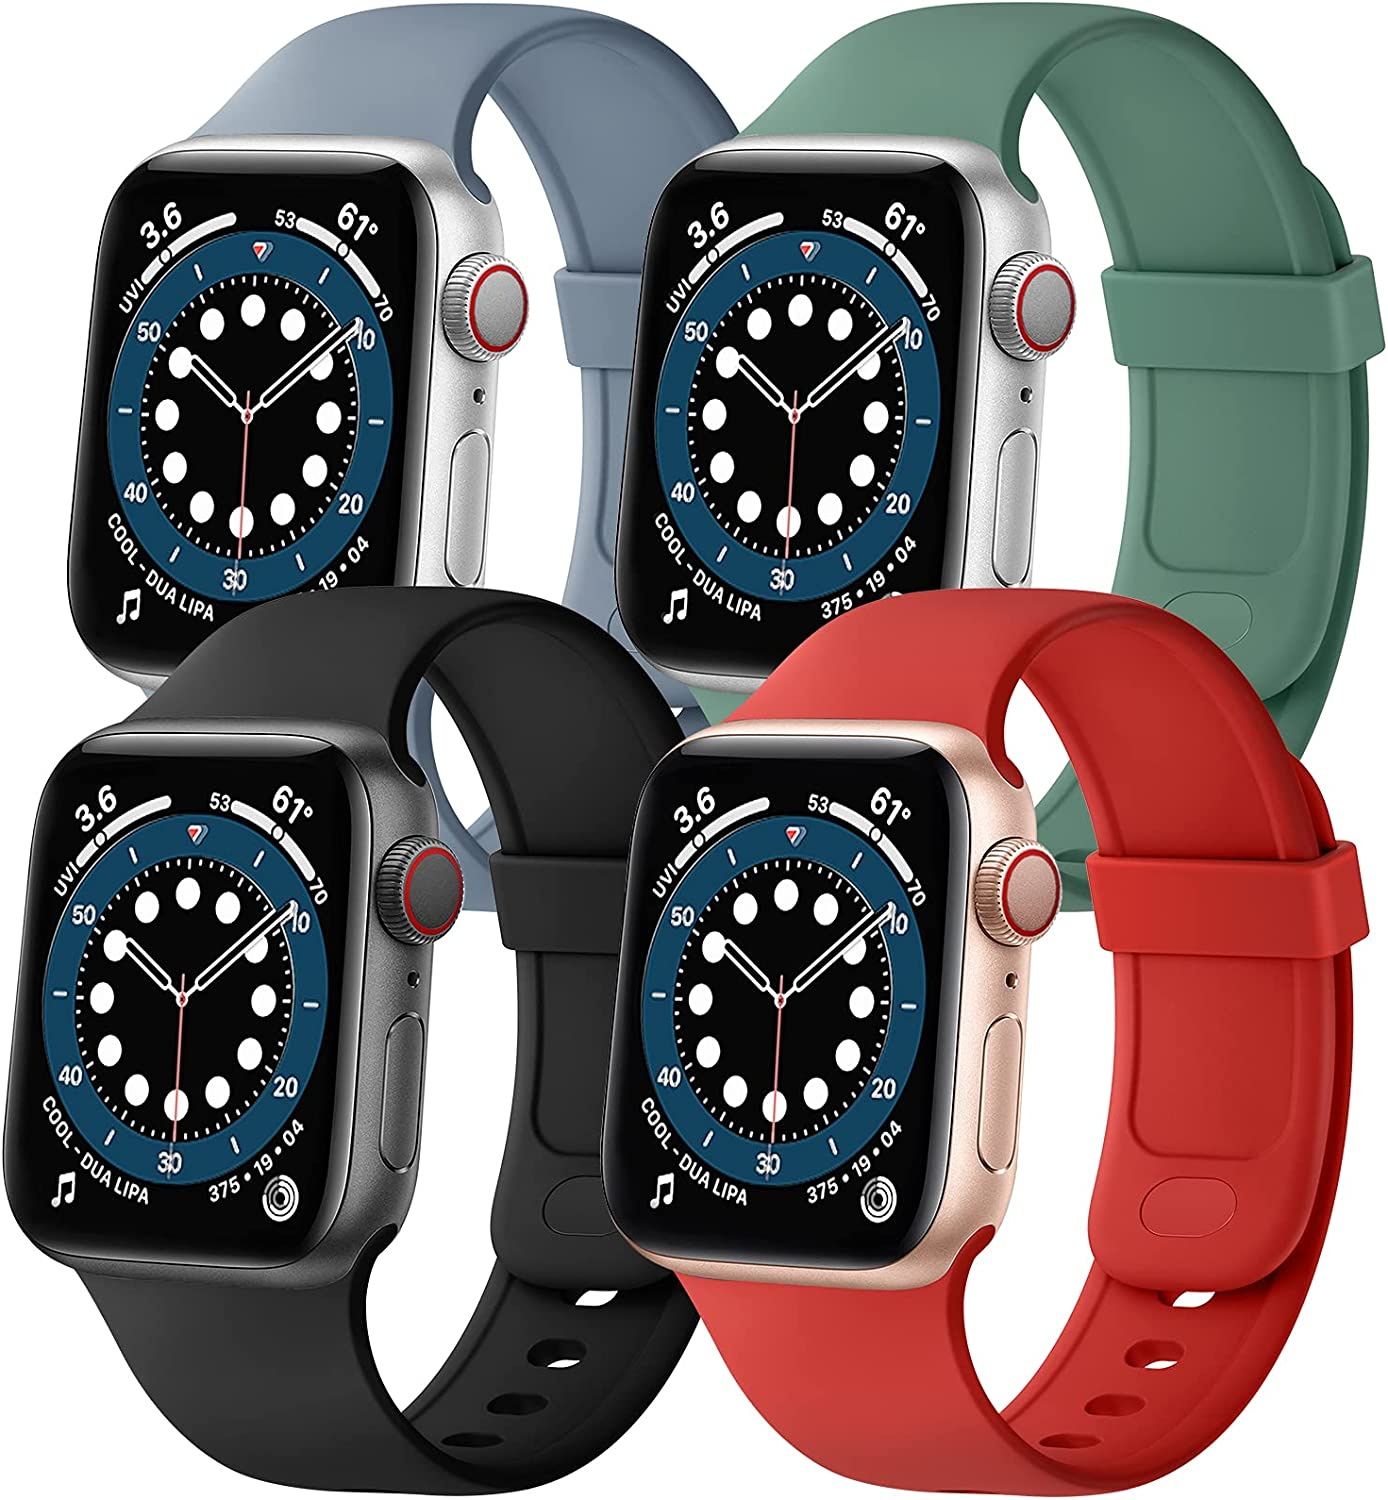 SVISVIPA Sport Bands Compatible with Apple Watch Bands 42mm 44mm, Soft Silicone Wristbands Women Men Replacement Strap for iWatch Series SE/6/5/4/3/2/1,Pine Green/Lavender Gray/Black/Red